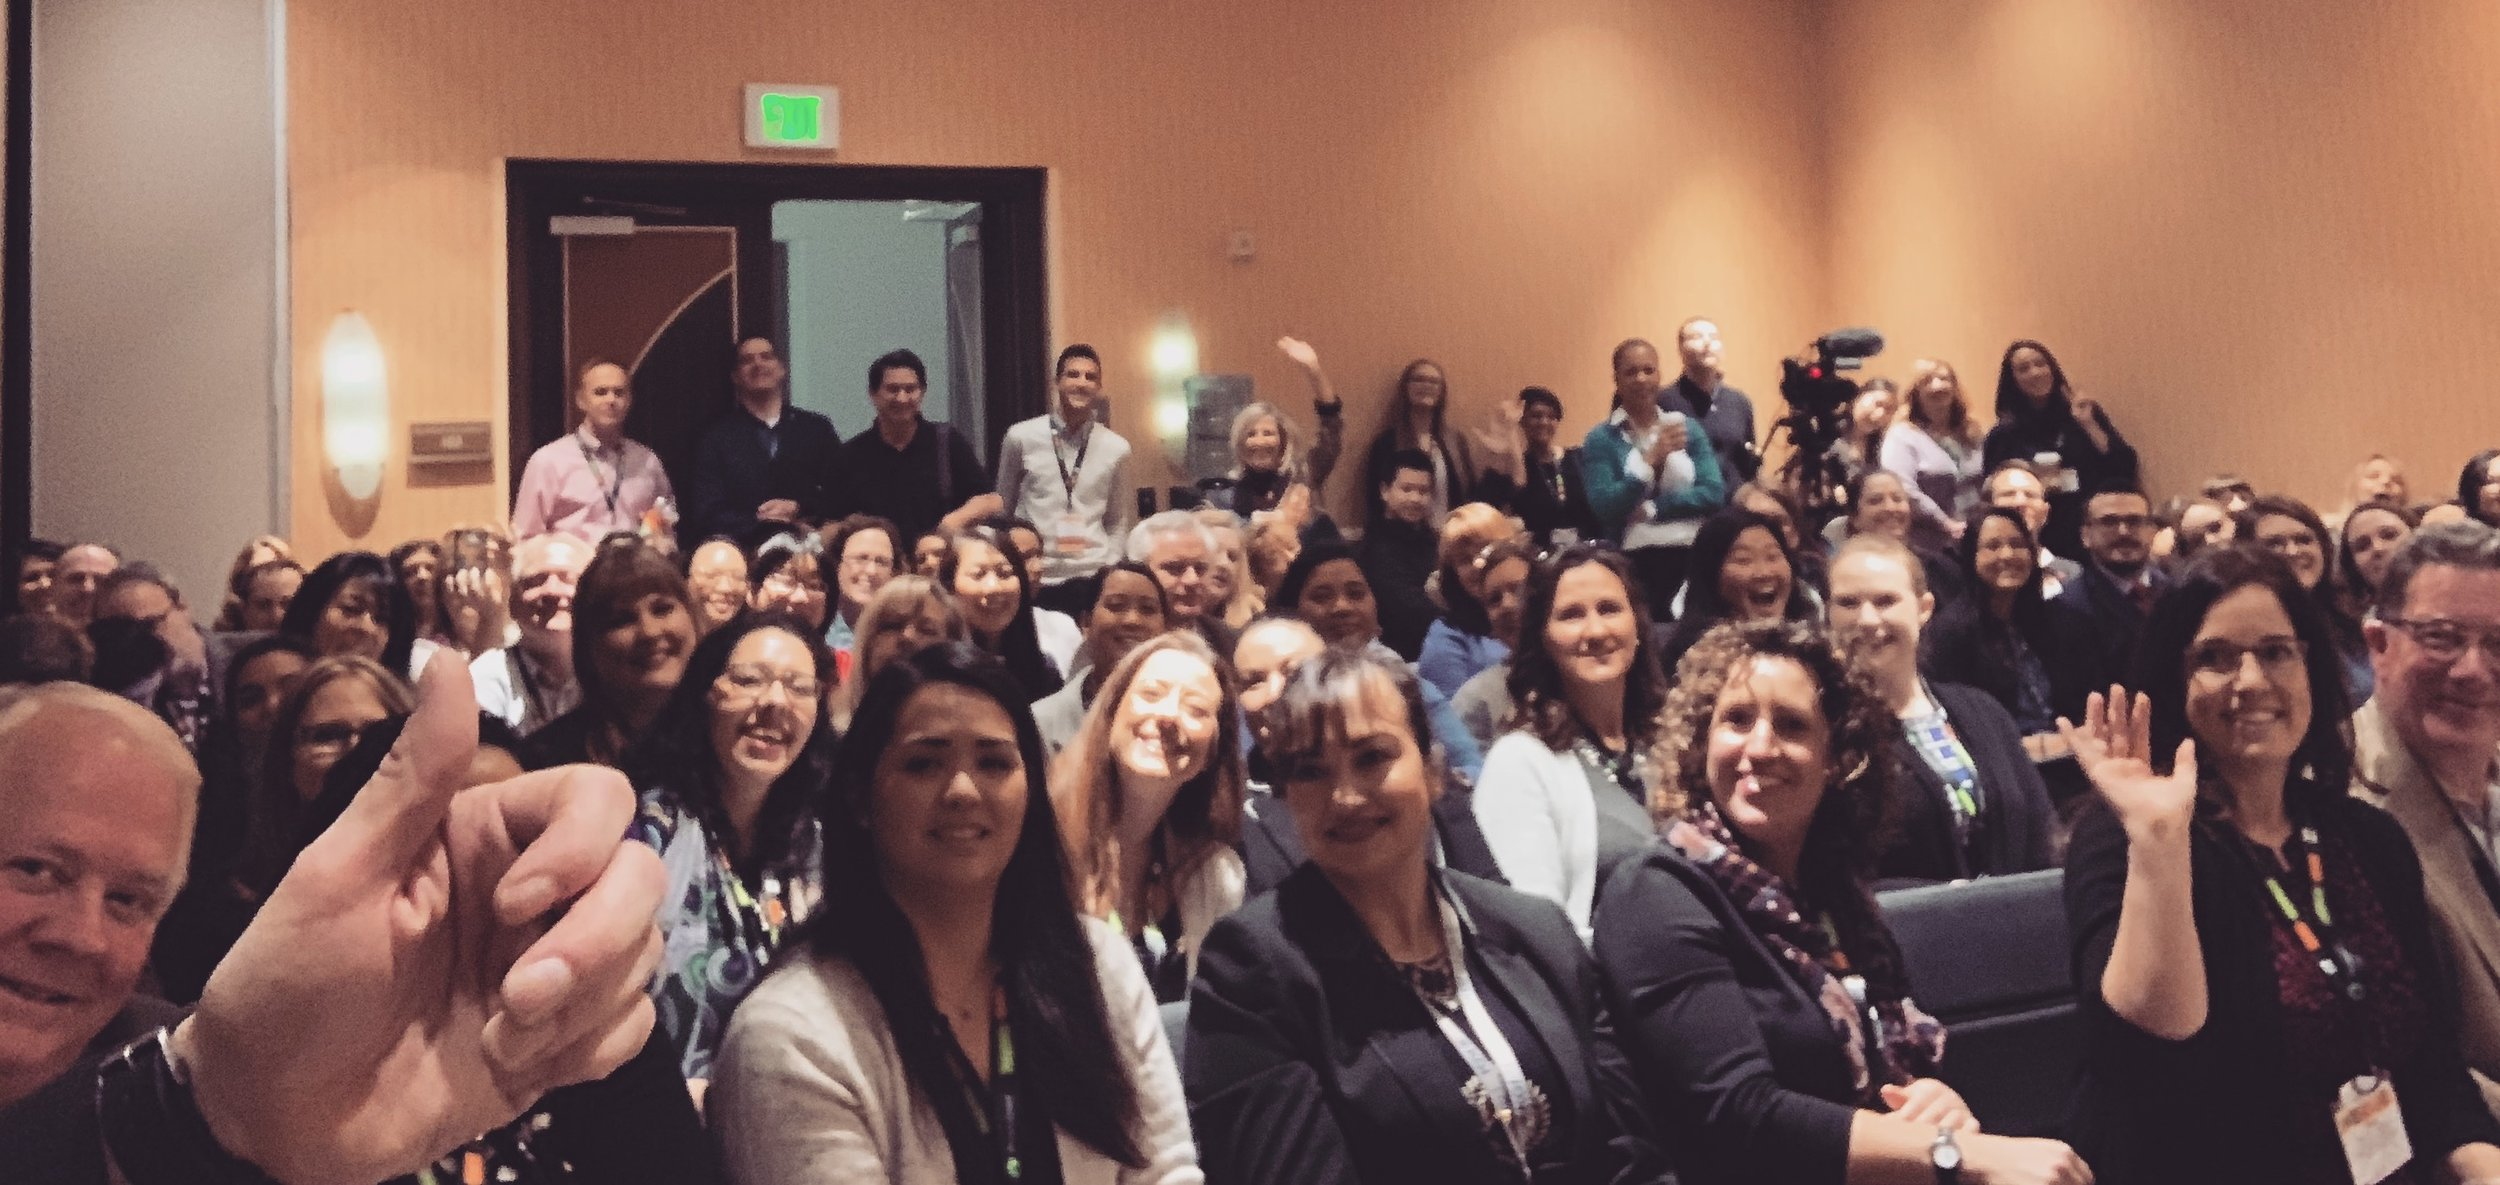 I'm deeply grateful to the SUPER AMAZING group who joined me for my Supercharged Storytelling workshop at the #CASEVII #ConnectWest 2019 conference in Anaheim. You know a crowd is fired up when they agree to a singalong. :)